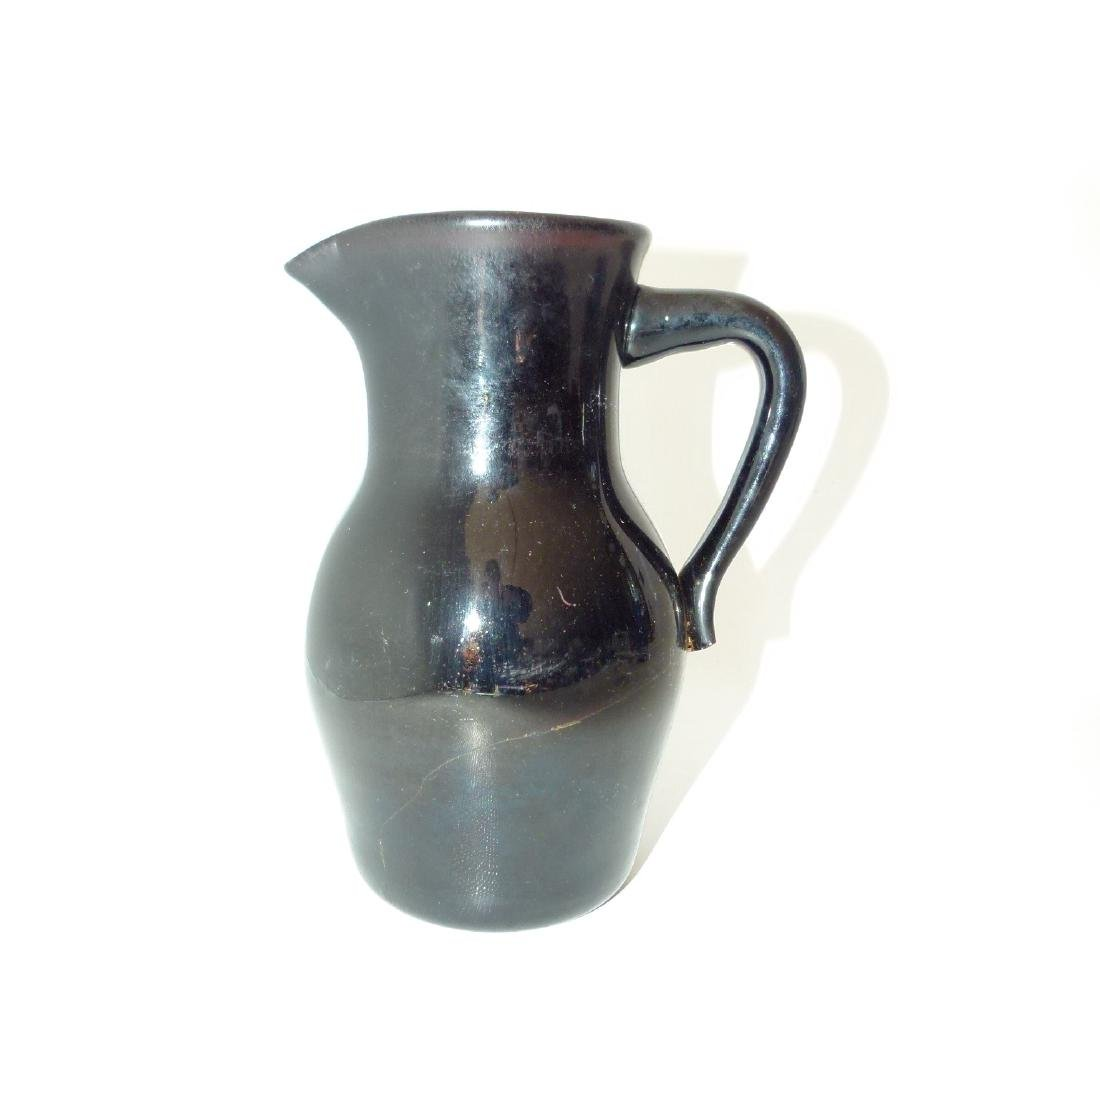 LOT (3) EARLY NEW JERSEY FREE BLOWN PITCHERS, 19TH C. - 6